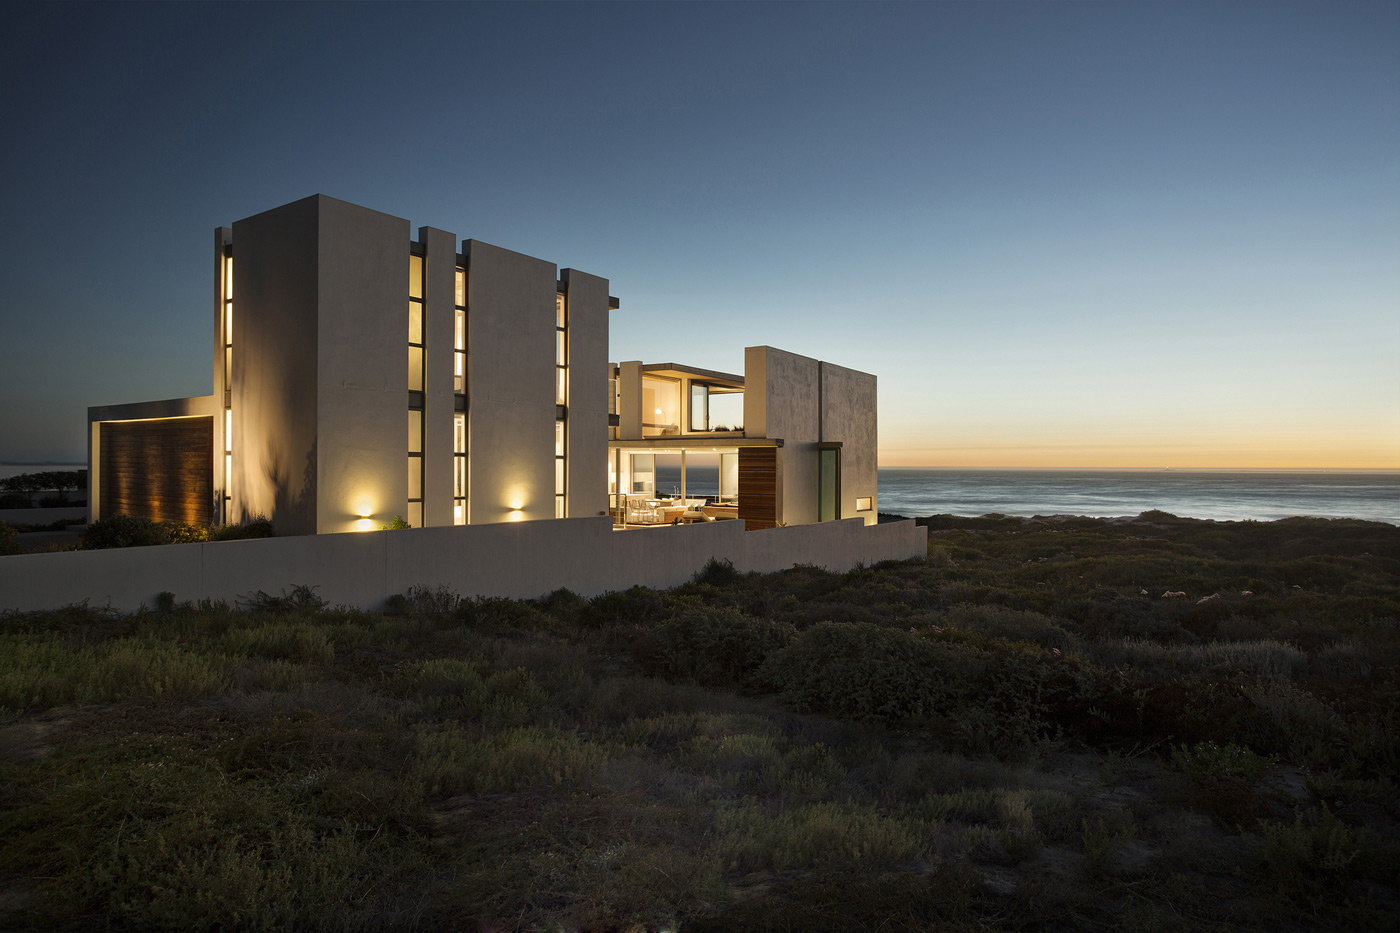 Evening, Lighting, Holiday Home in Yzerfontein, South Africa